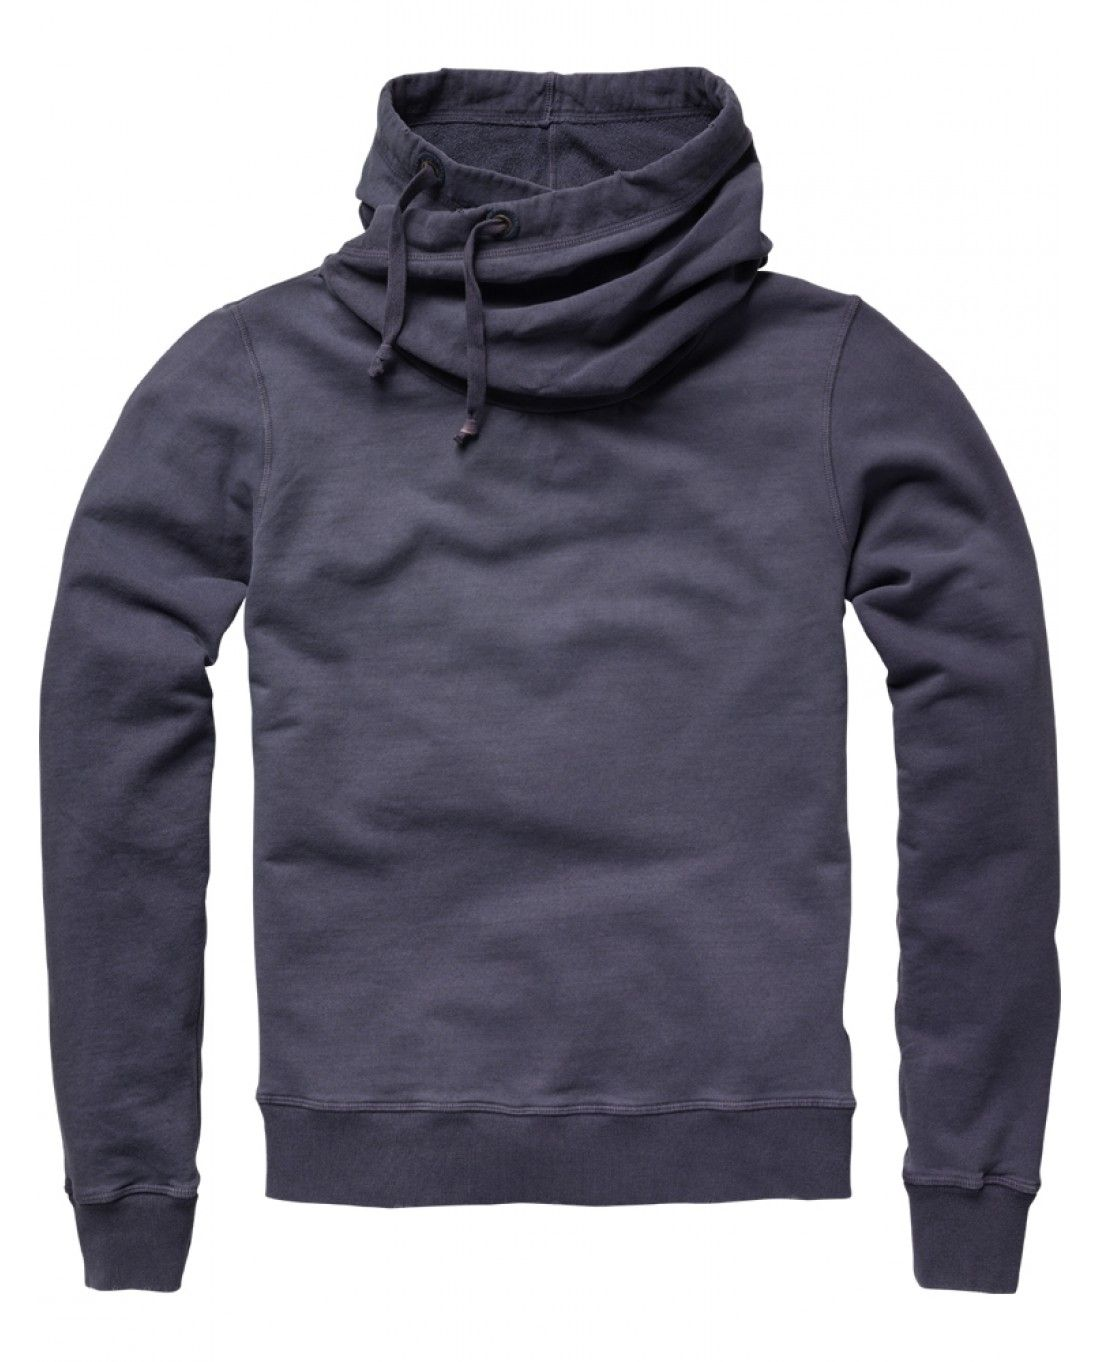 Twisted hooded sweater - Scotch & Soda Online Shop